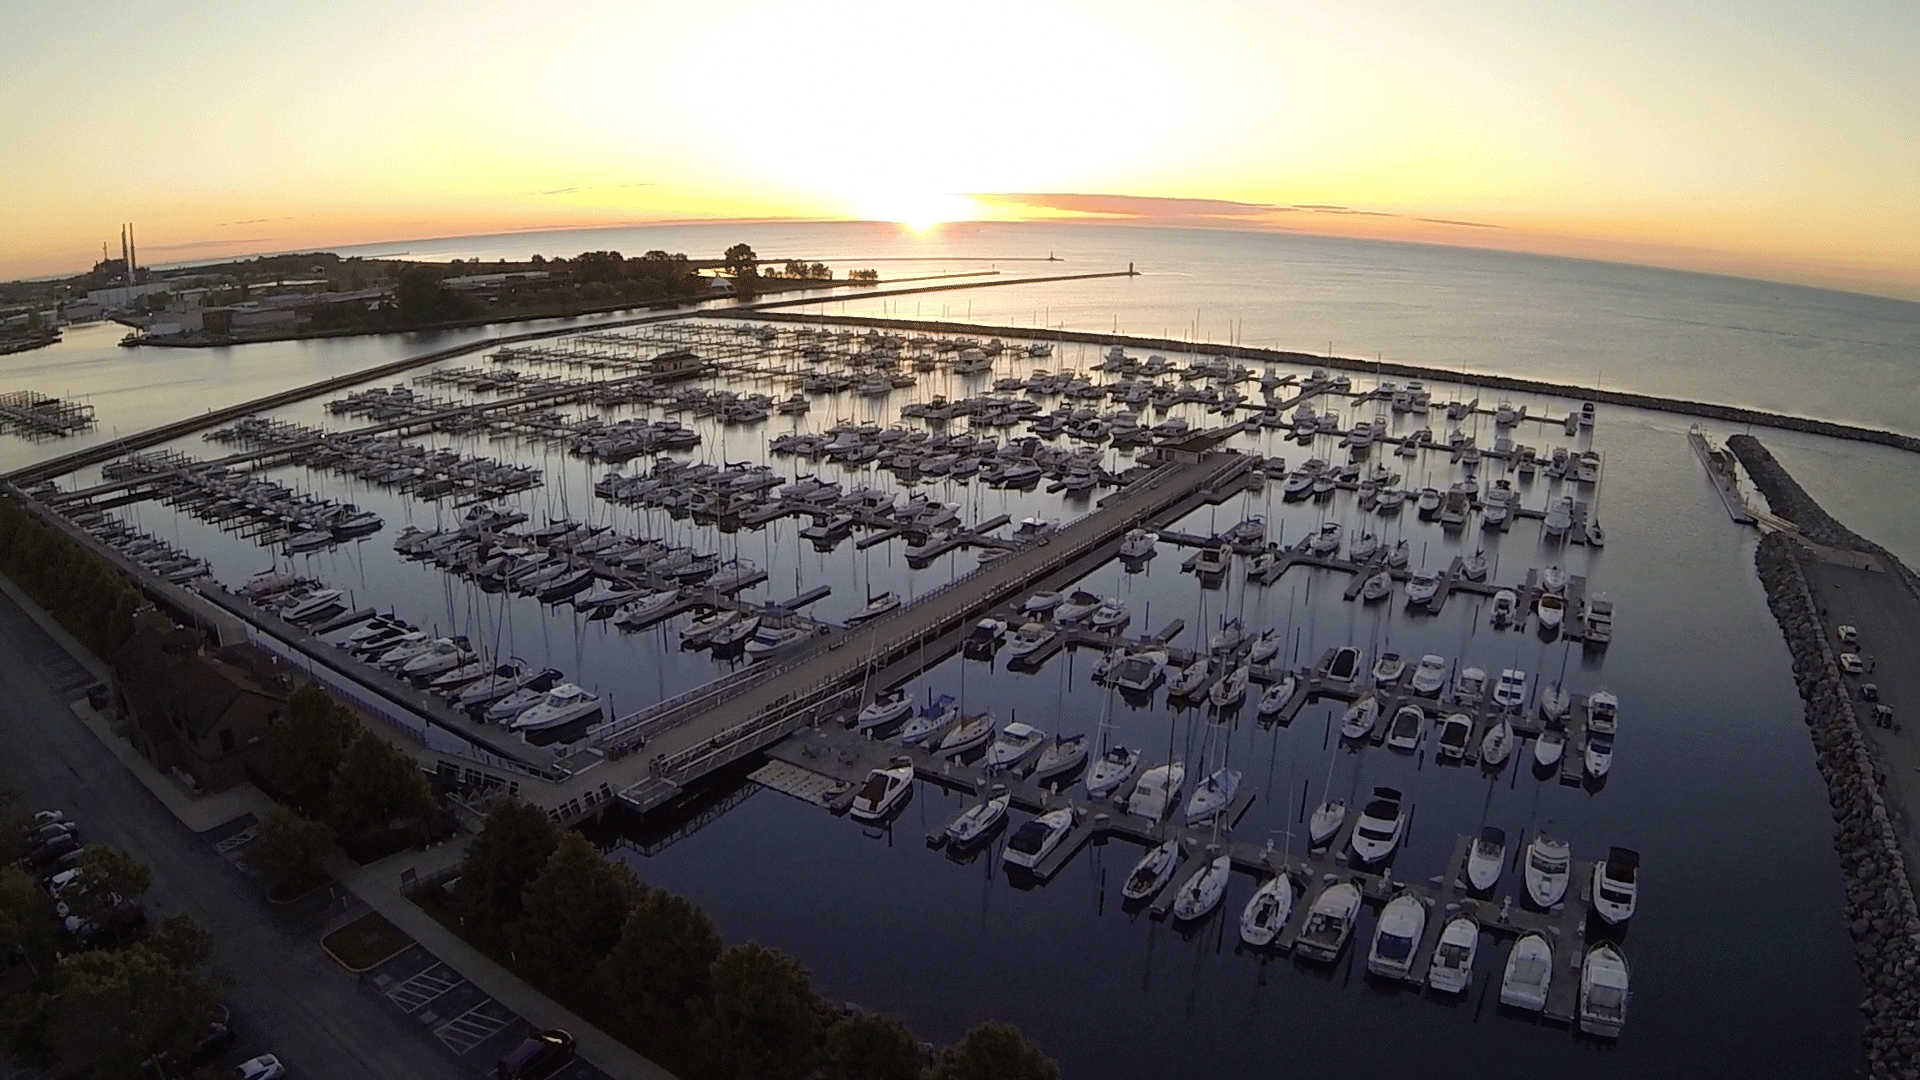 Waukegan Harbor and Marina